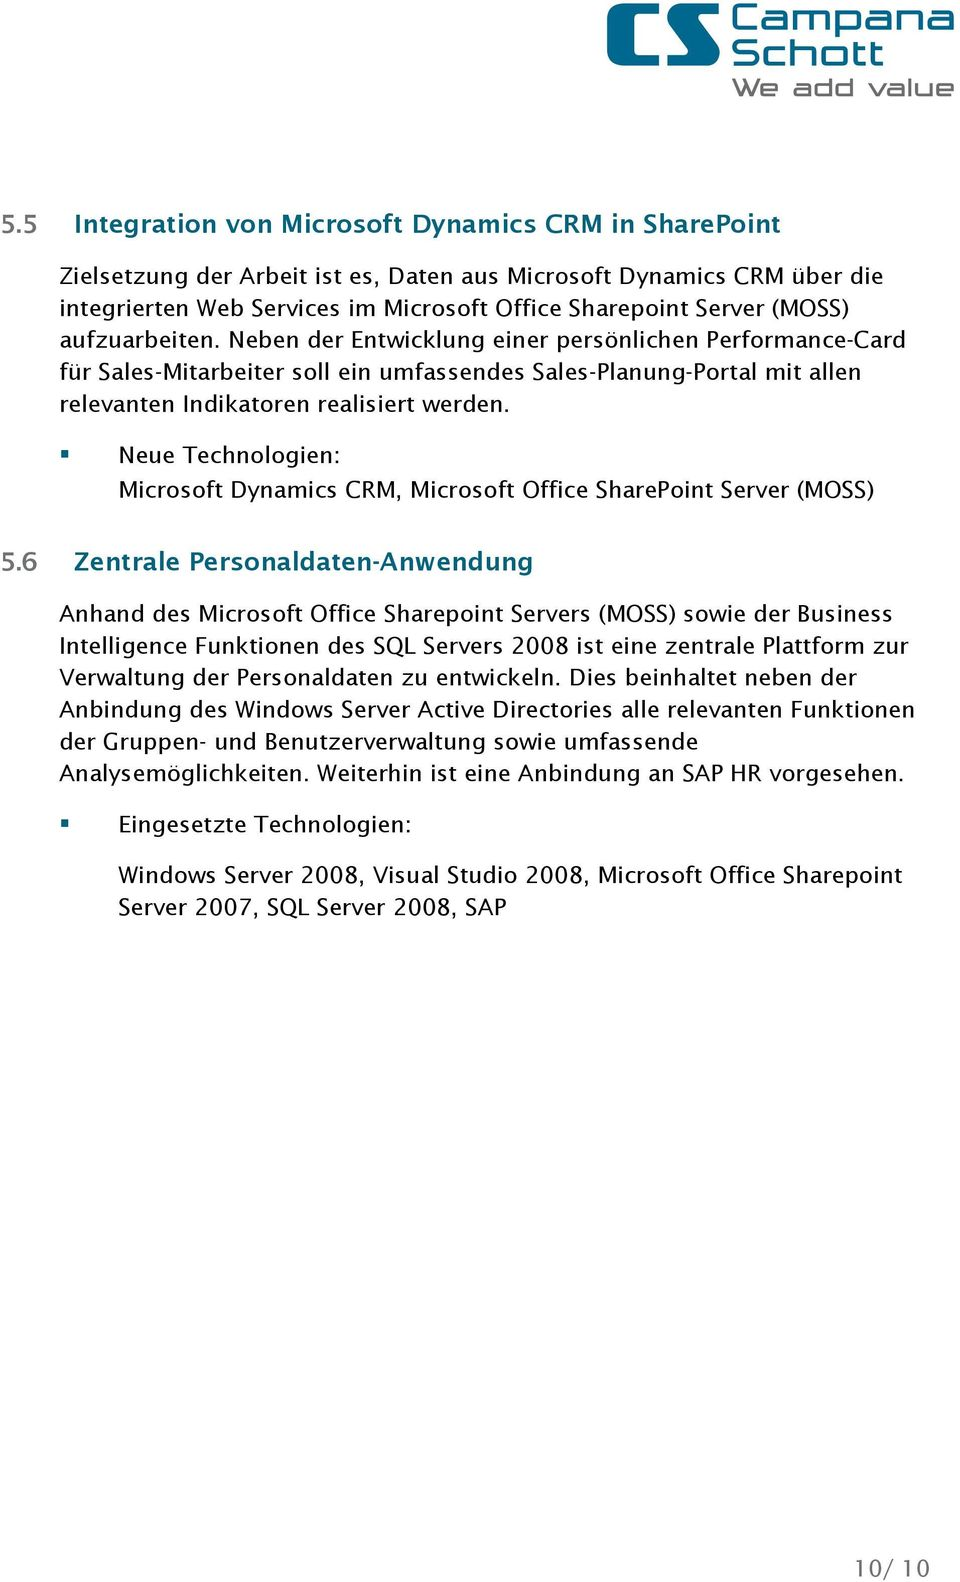 Neue Technologien: Microsoft Dynamics CRM, Microsoft Office SharePoint Server (MOSS) 5.